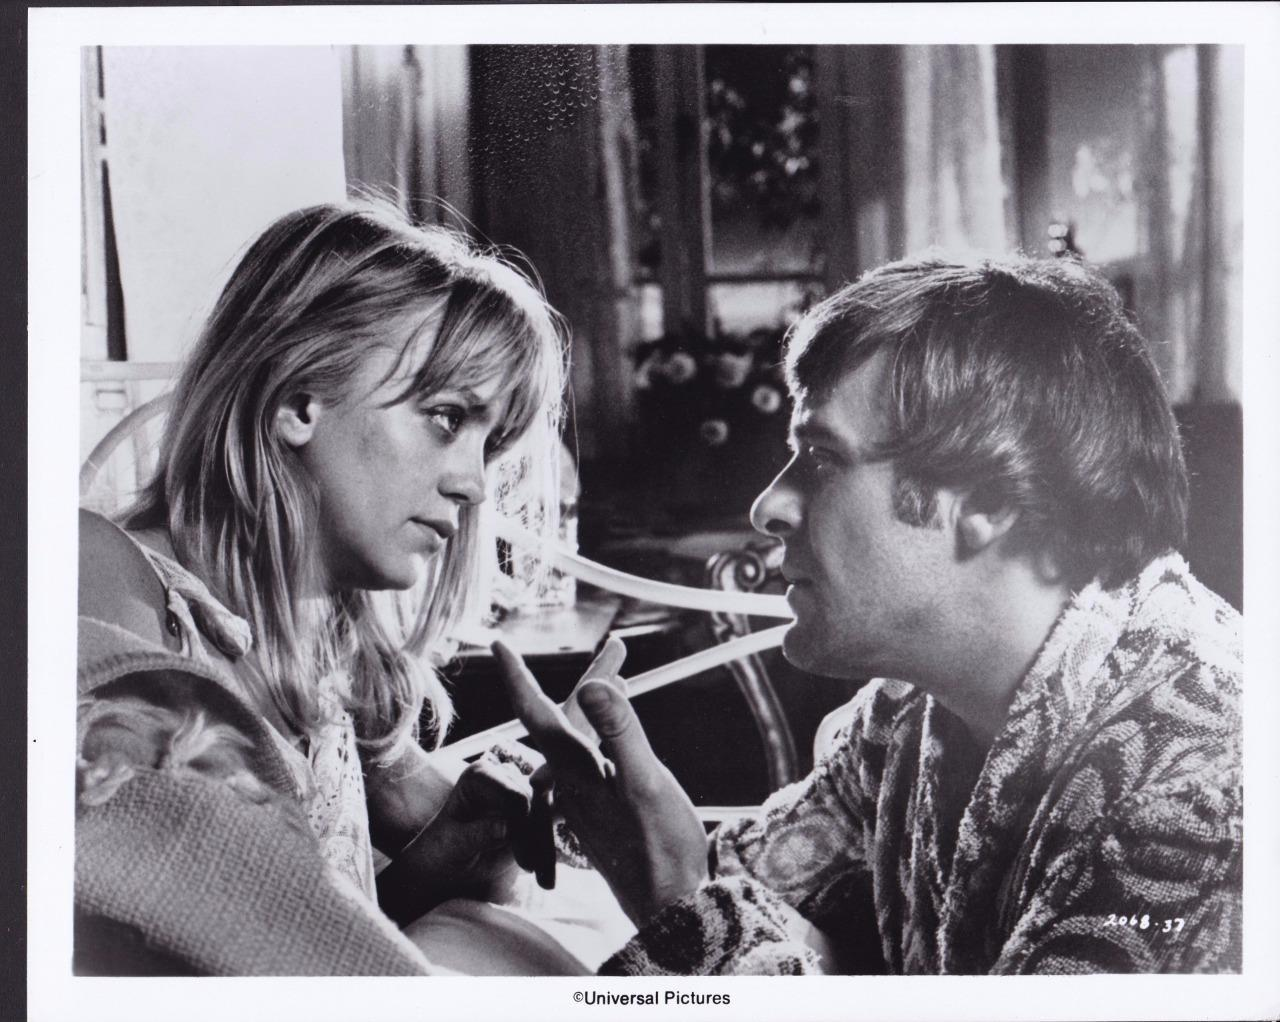 Anthony Hopkins and Goldie Hawn in The Girl from Petrovka (1974)